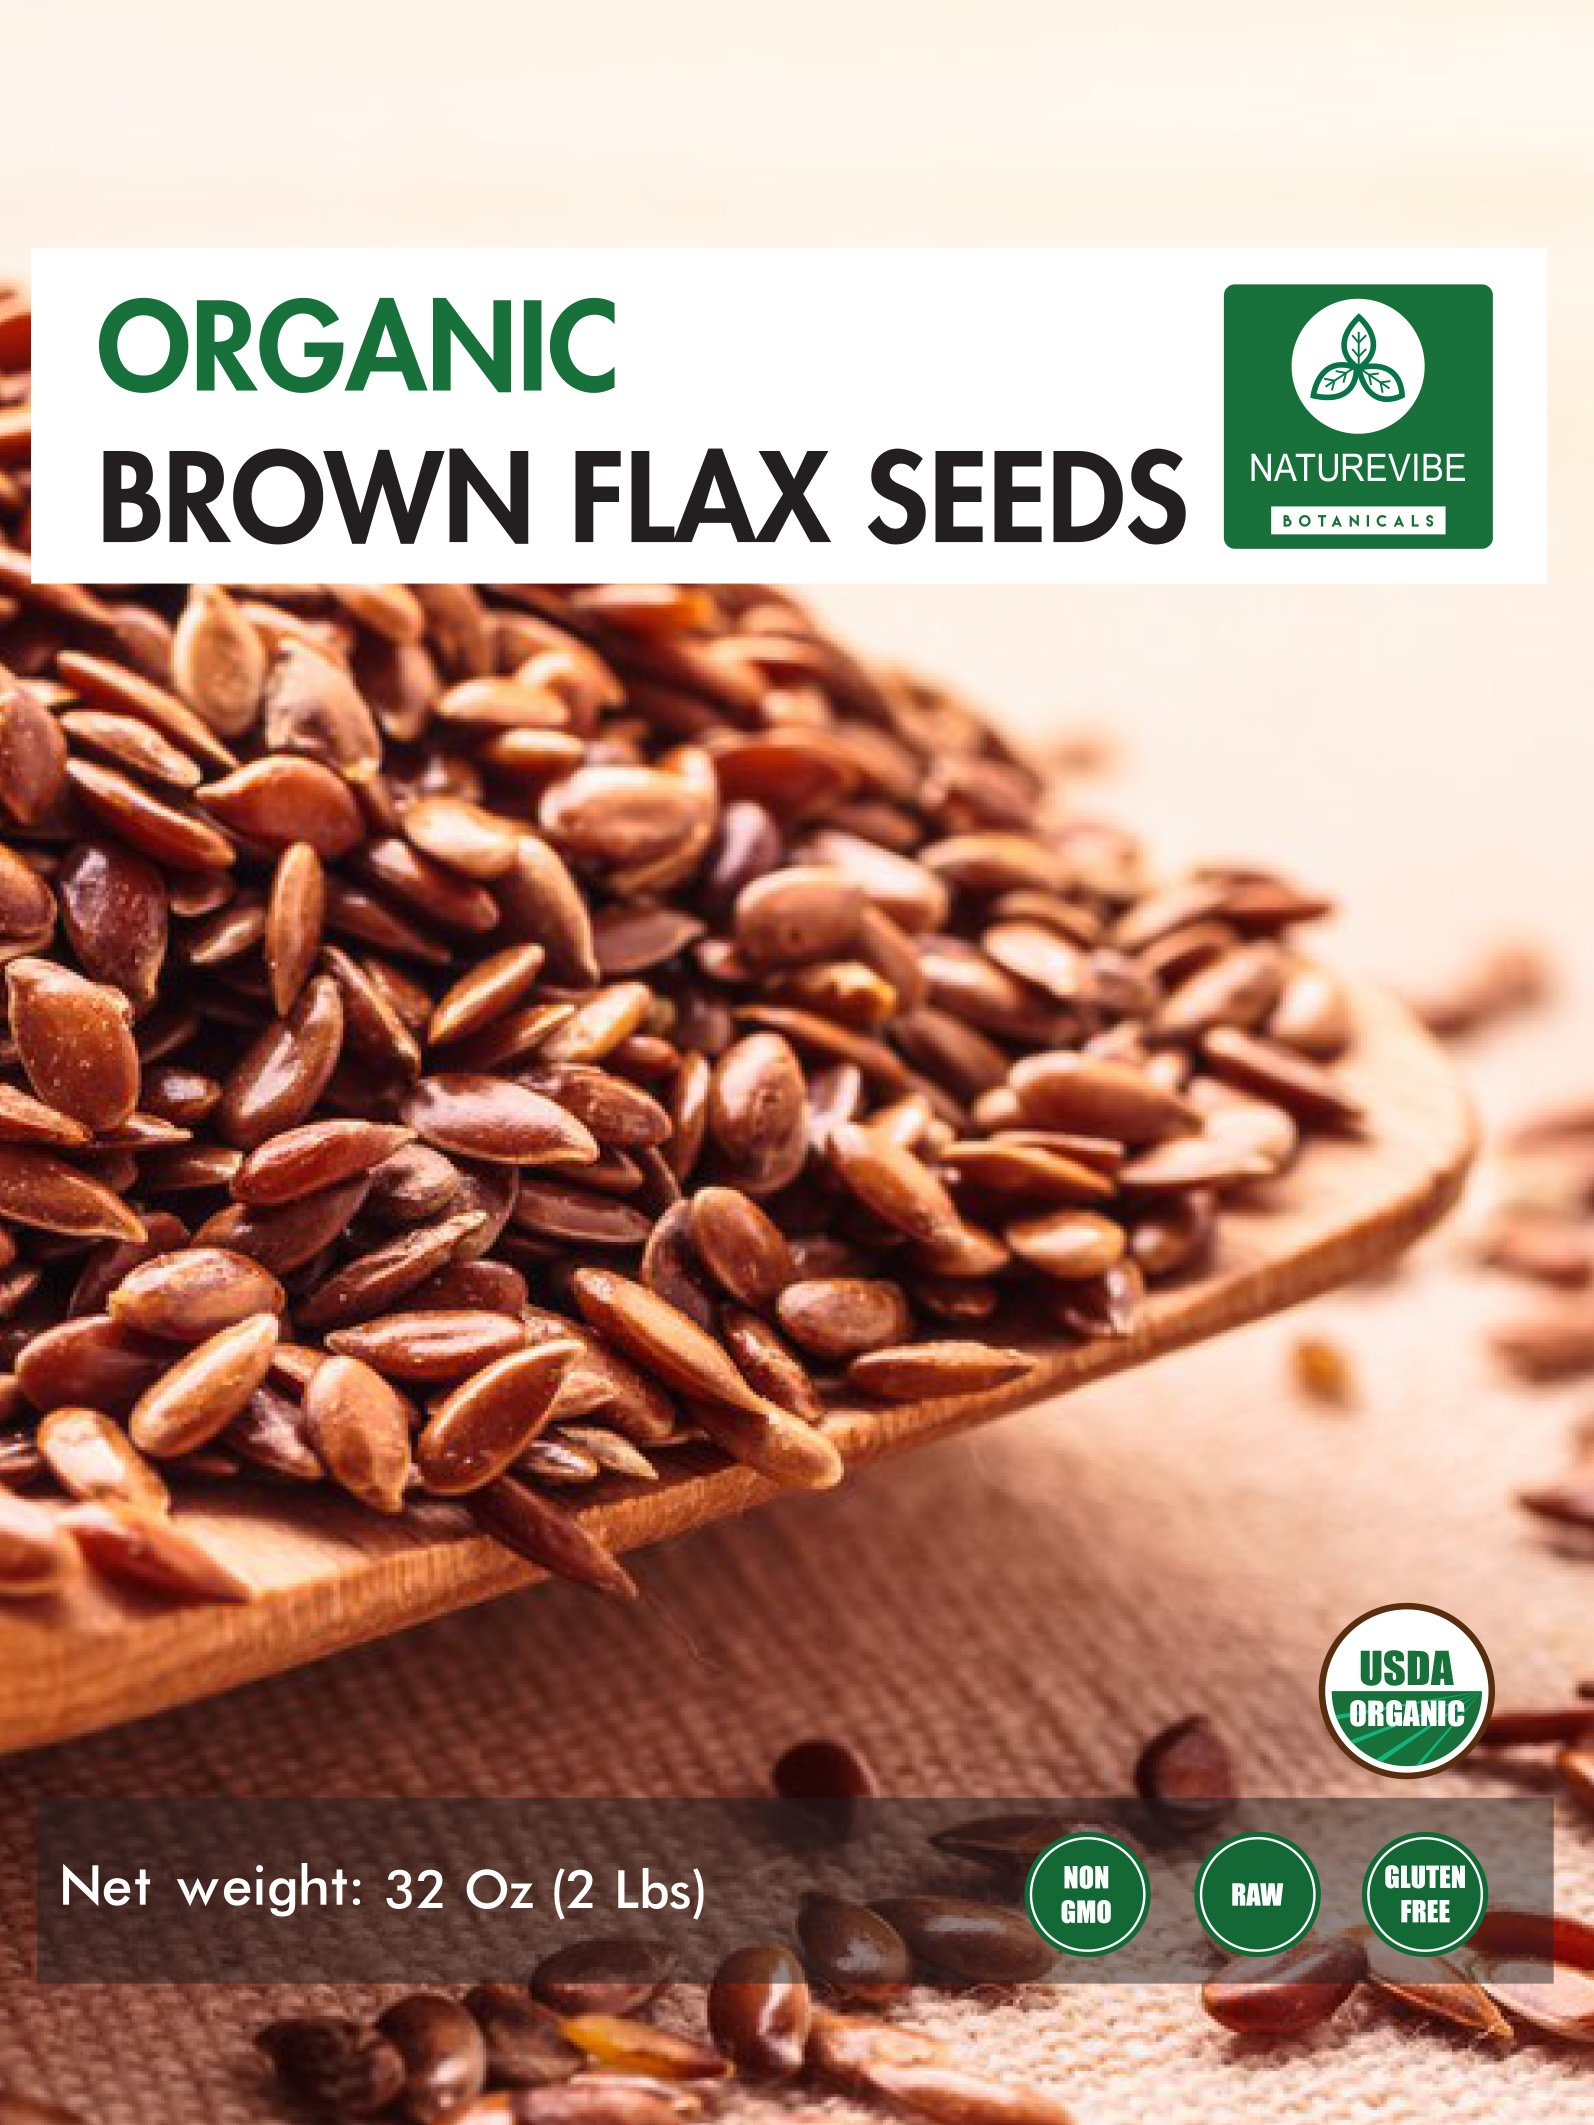 Organic Brown Flax Seed (2lb) by Naturevibe Botanicals, Gluten-Free & Non-GMO (32 ounces) by Naturevibe Botanicals (Image #2)